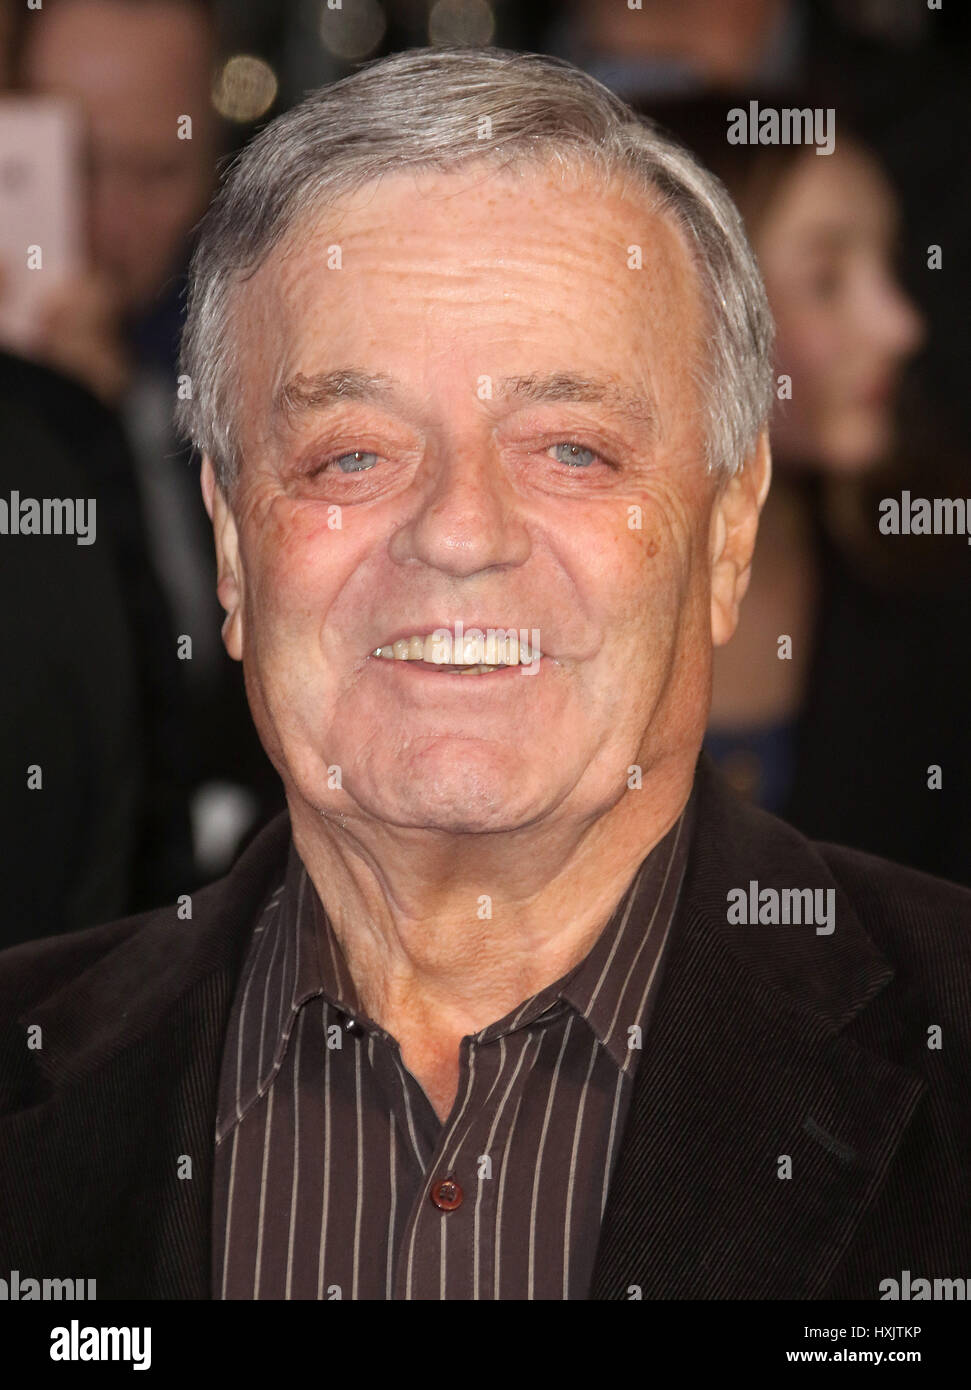 Mar 16, 2017 - Tony Blackburn attending Another Mother's Son' World Premiere, Odeon Leicester Square in - Stock Image